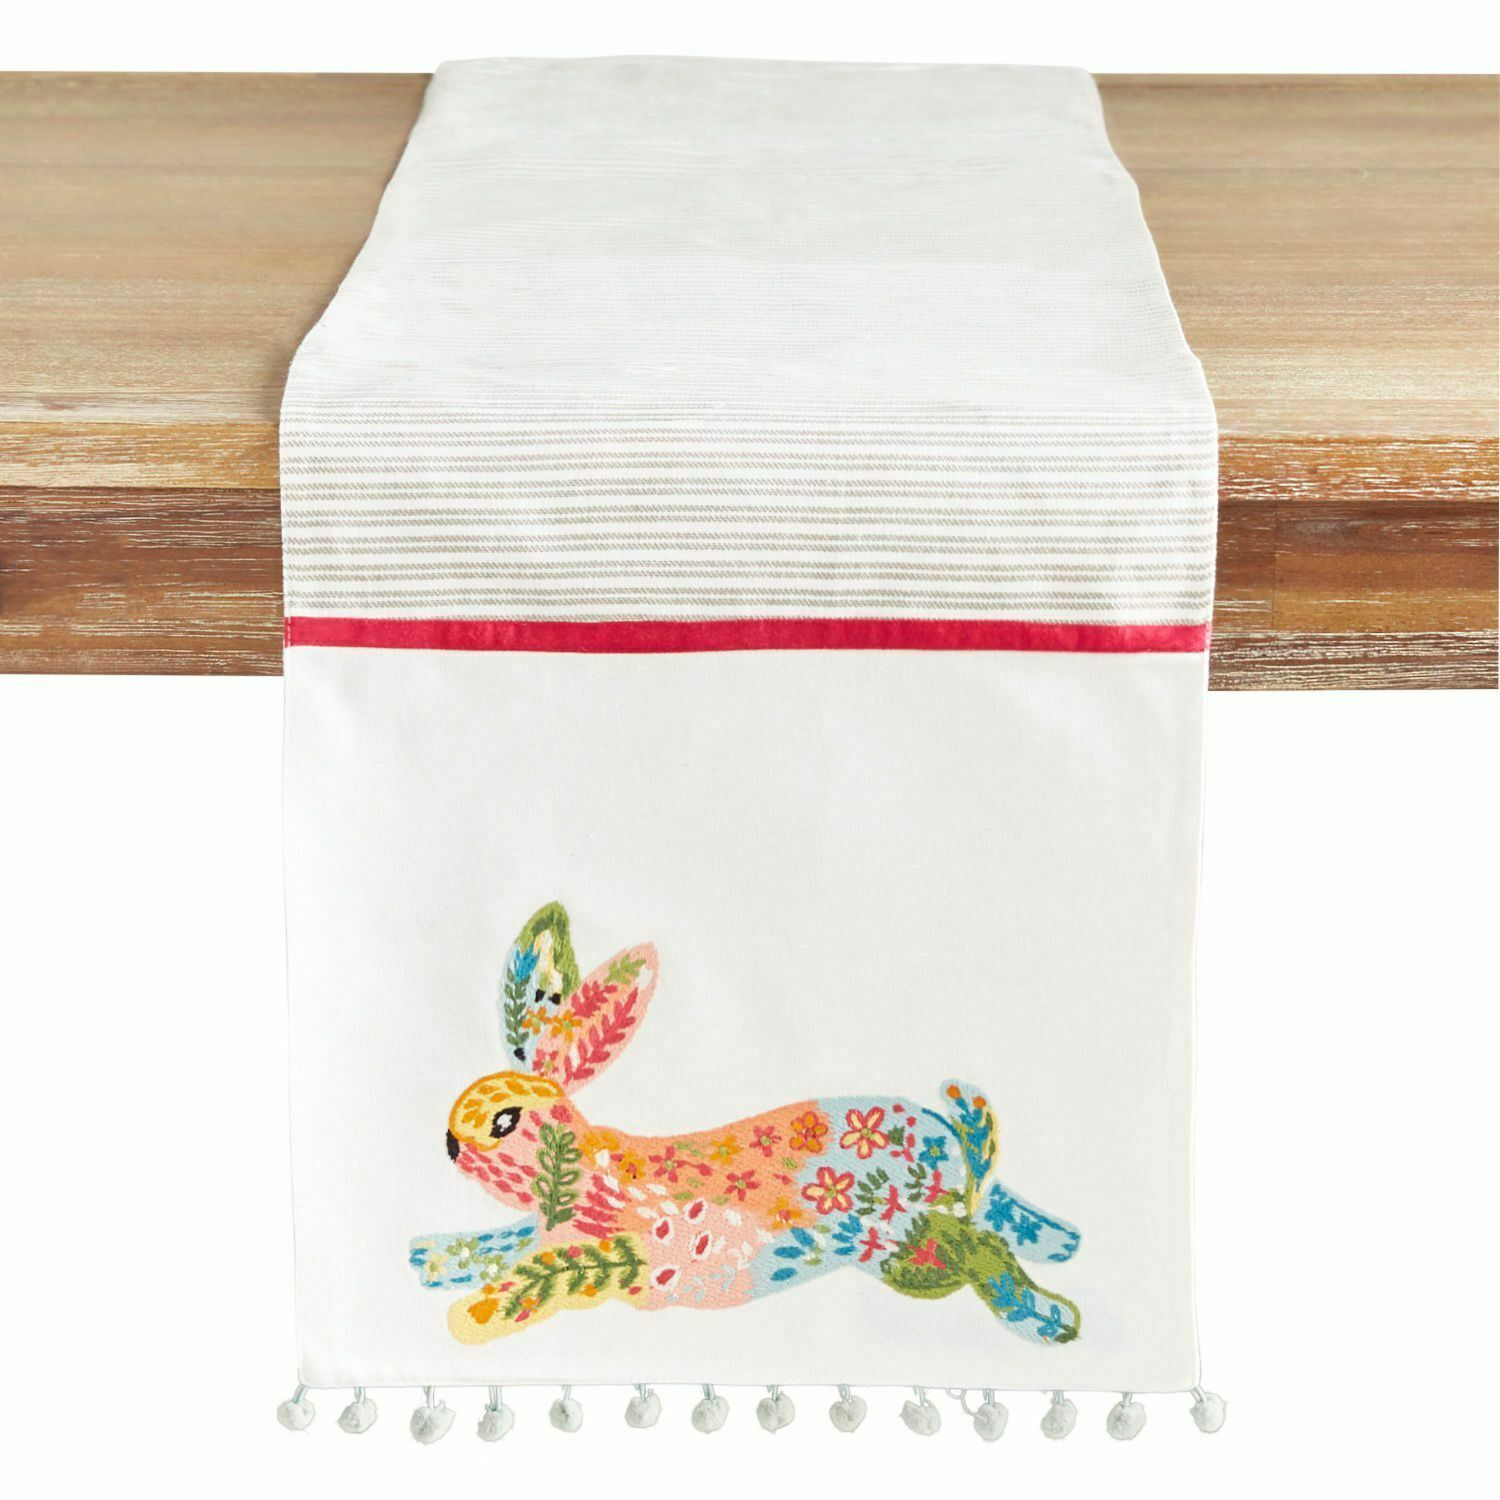 Primary image for NWT Pier 1 Imports EMBROIDERED  Easter RABBIT Table Runner 13 x 72